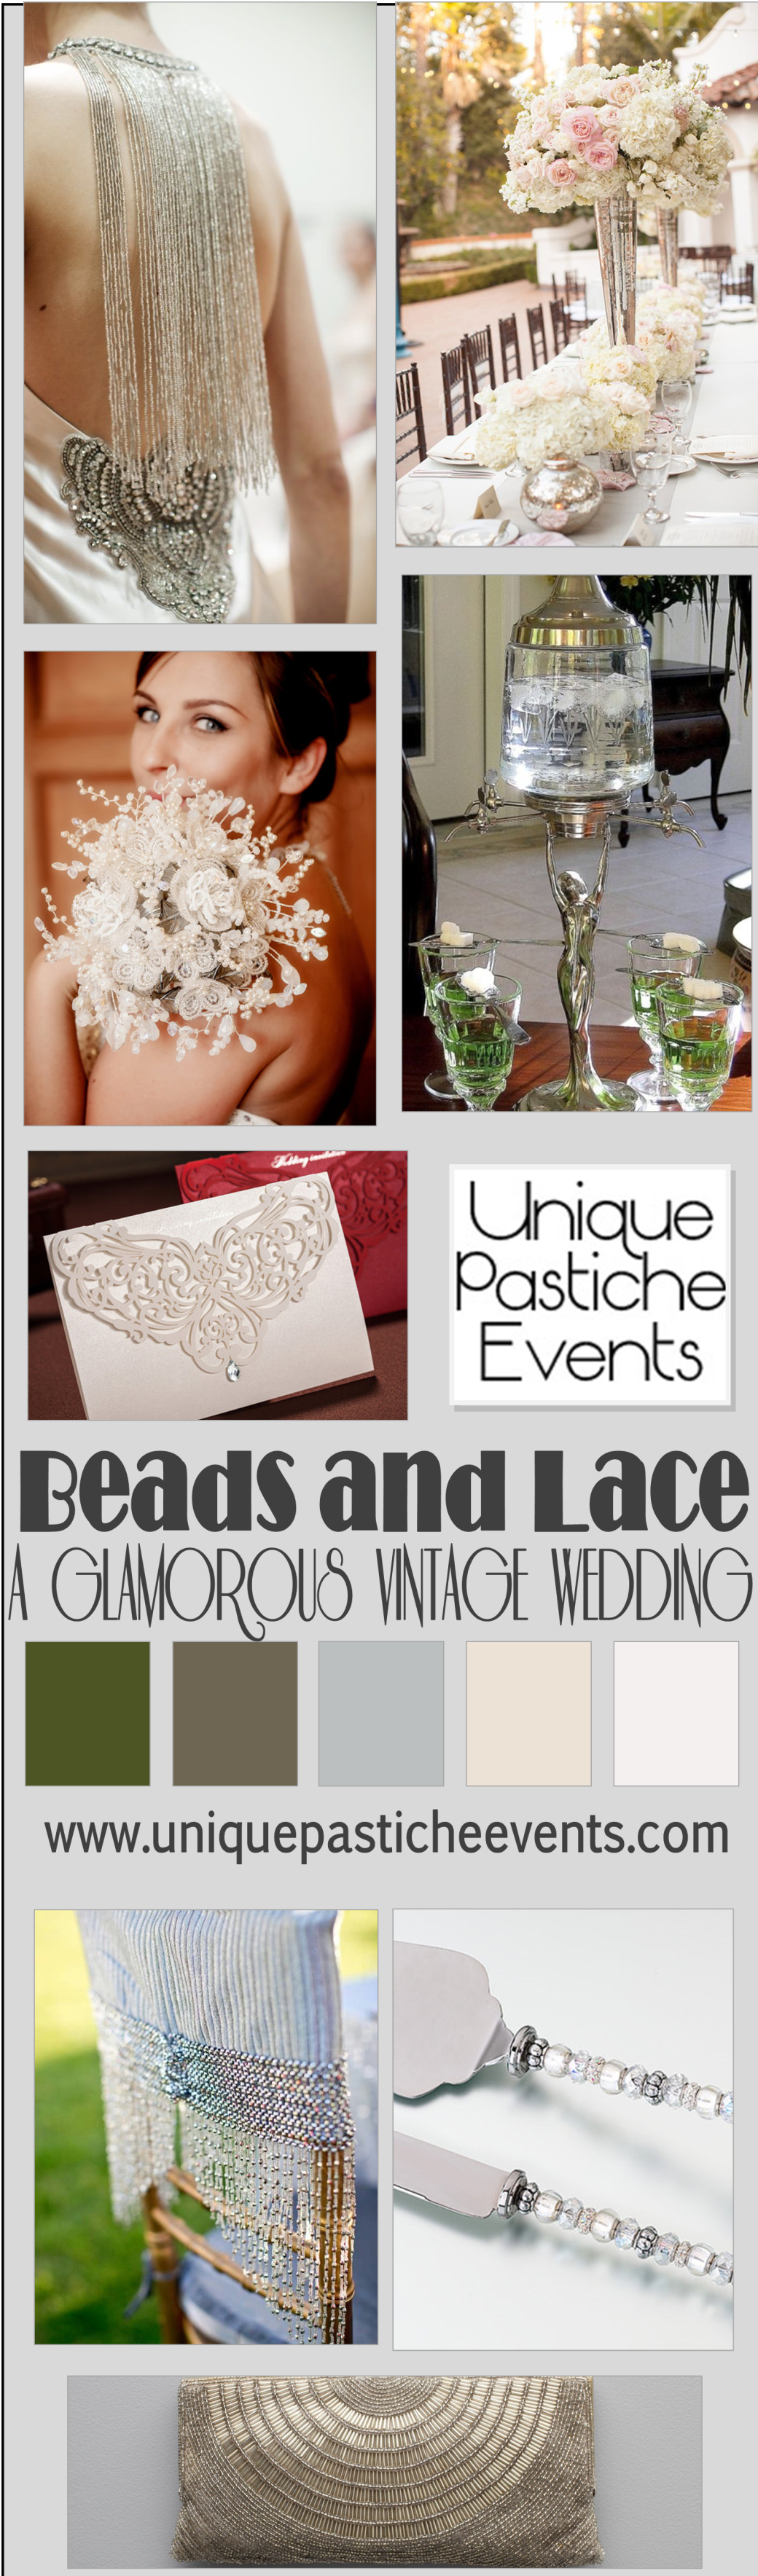 Beads and Lace – A Glamorous Vintage Wedding Inspiration Board by Unique Pastiche Events Get the full details: https://uniquepasticheevents.com/2014/11/19/beads-and-lace-a-glamourous-vintage-wedding-inspiration-board/